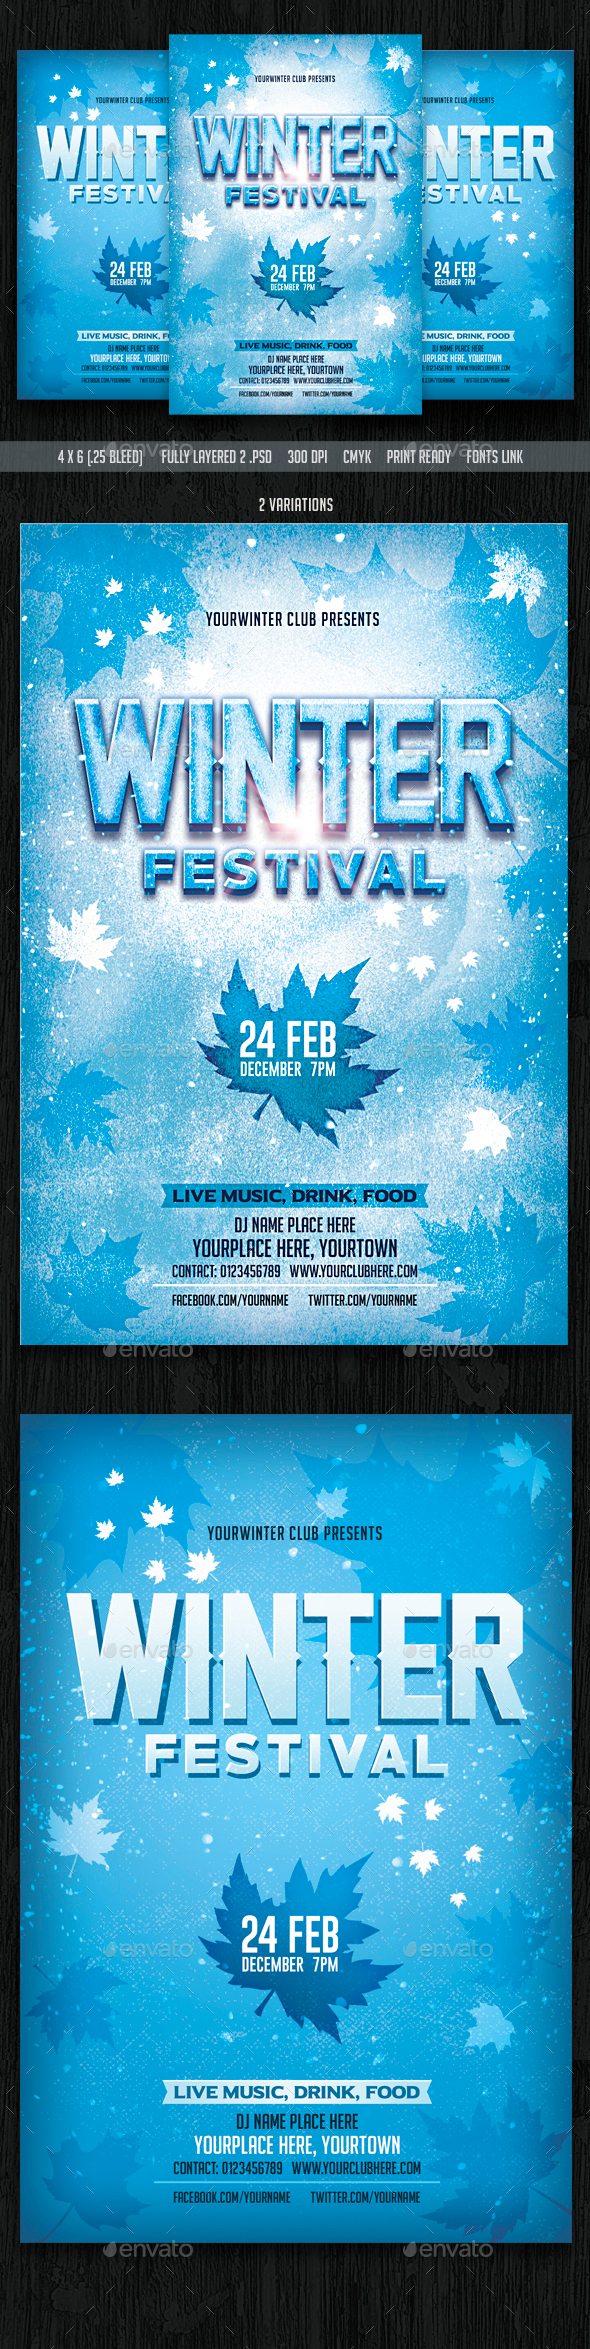 Winter Festival Flyer - Clubs & Parties Events